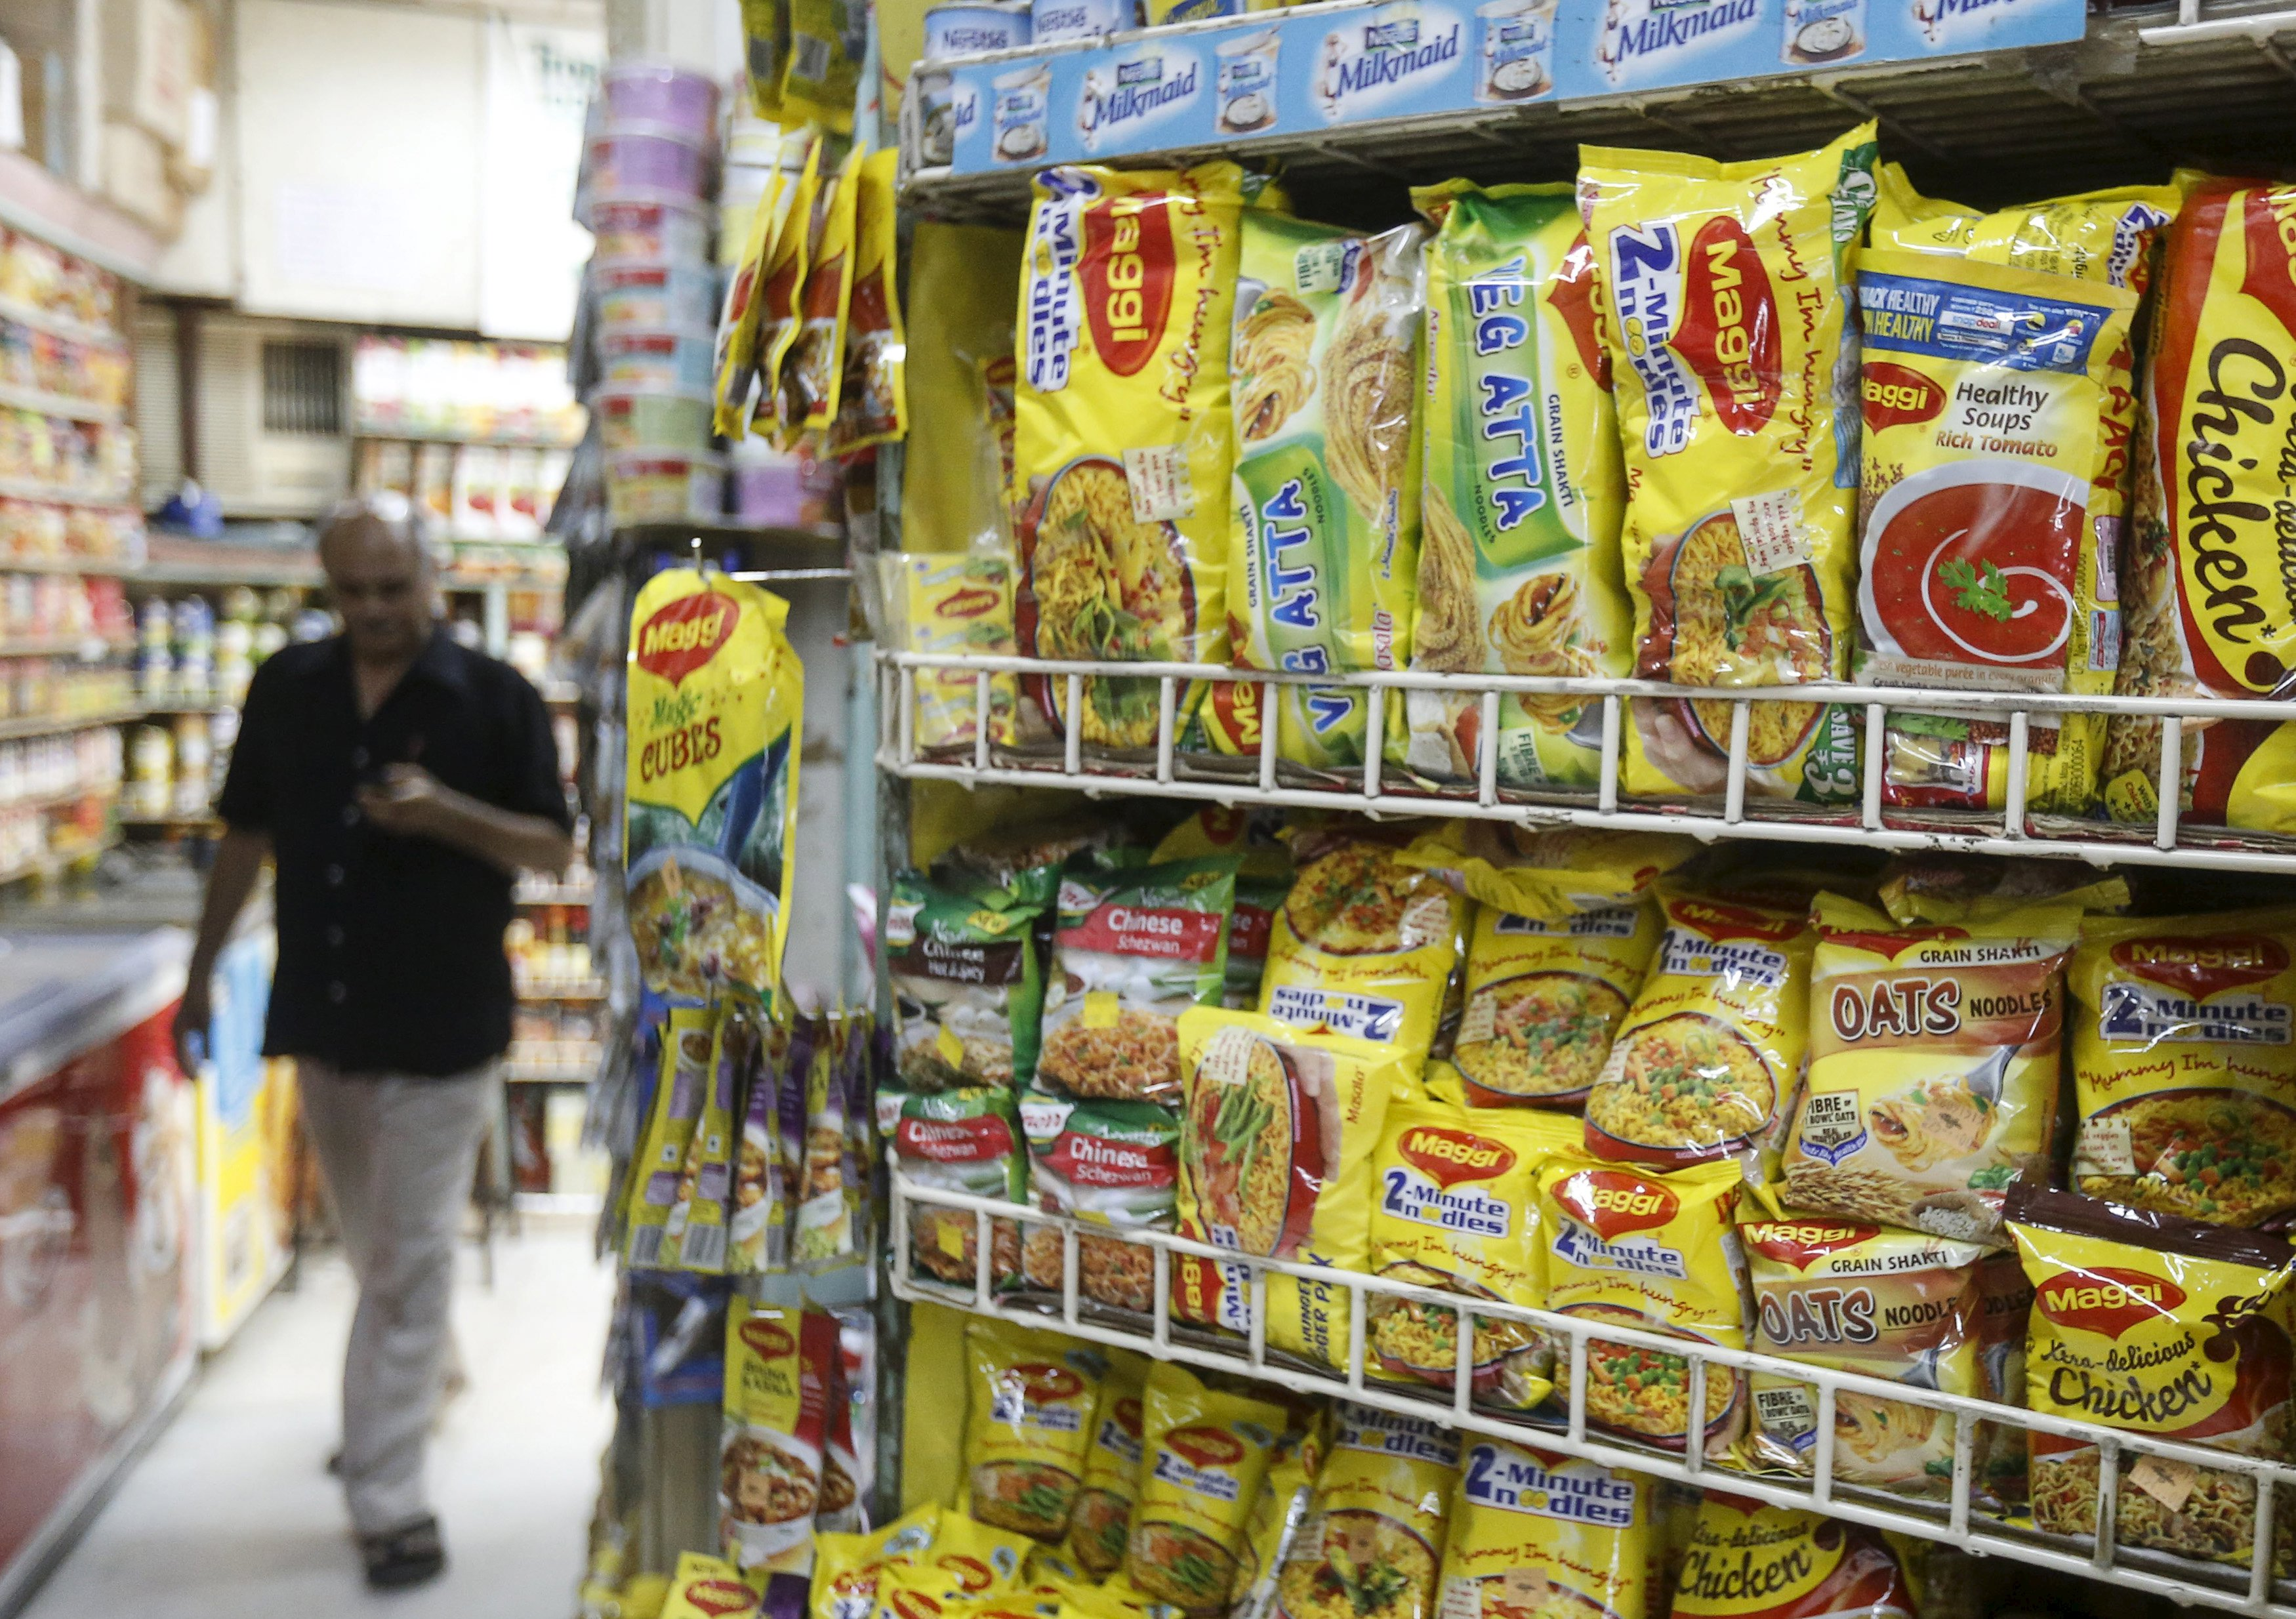 WEB_PHOTO_MAGGI_NOODLES_INDIA_05_06_2015